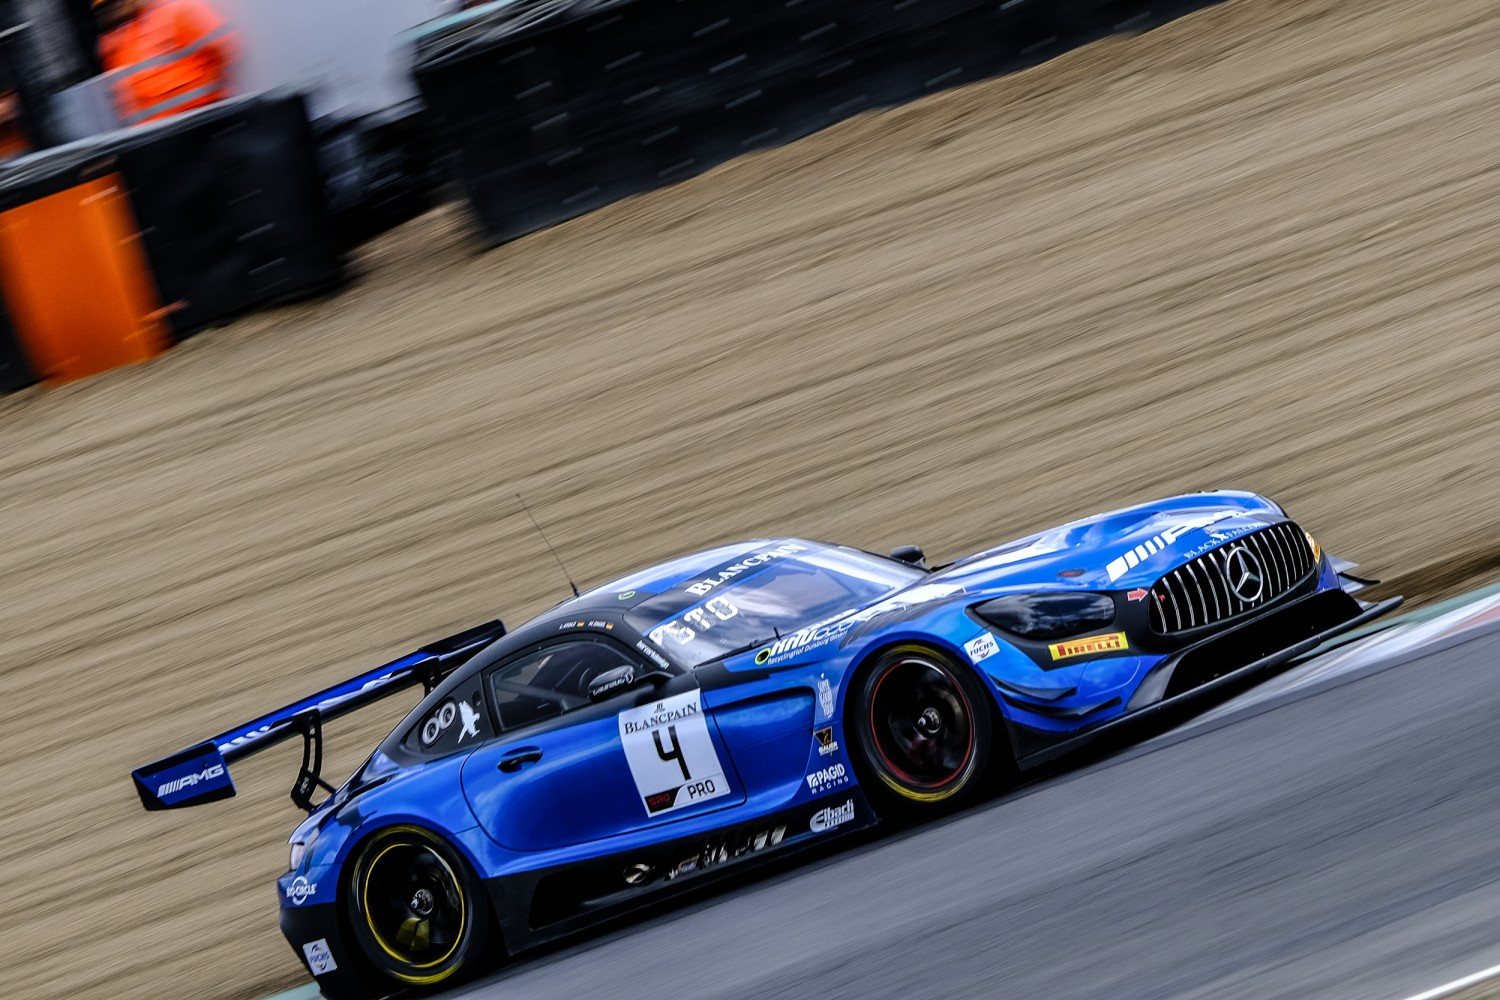 Black Falcon gives Mercedes-AMG second Blancpain GT World Challenge Europe victory at Brands Hatch